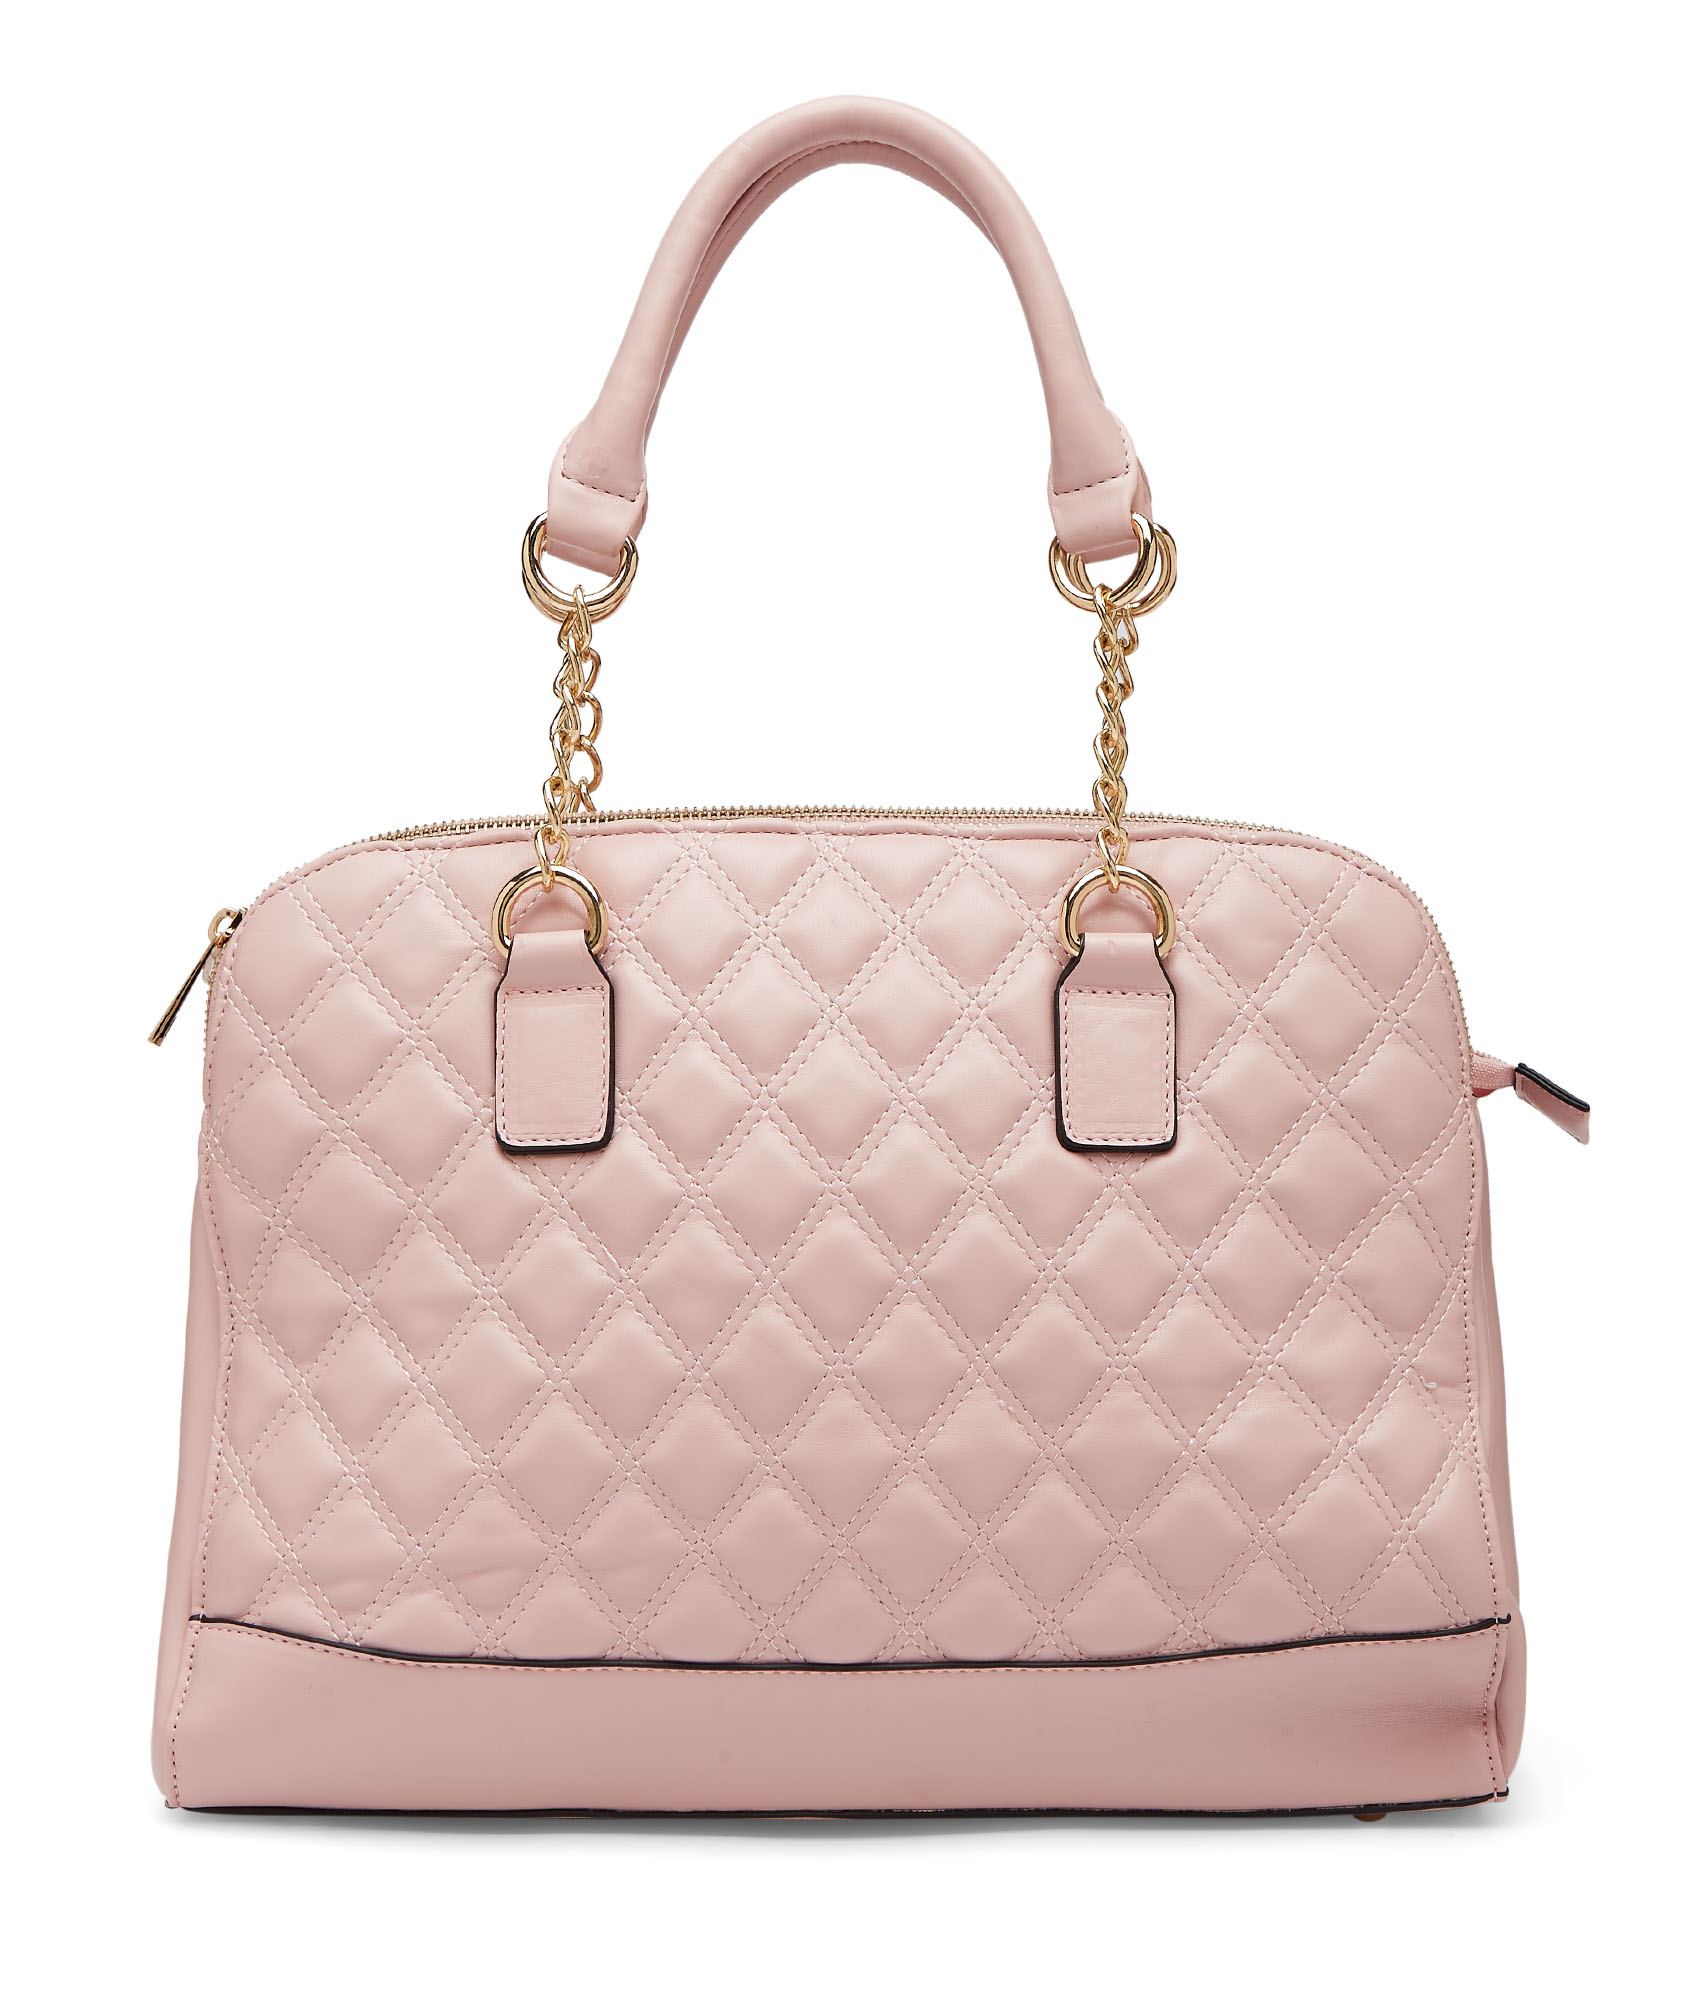 casual quilted bag for women